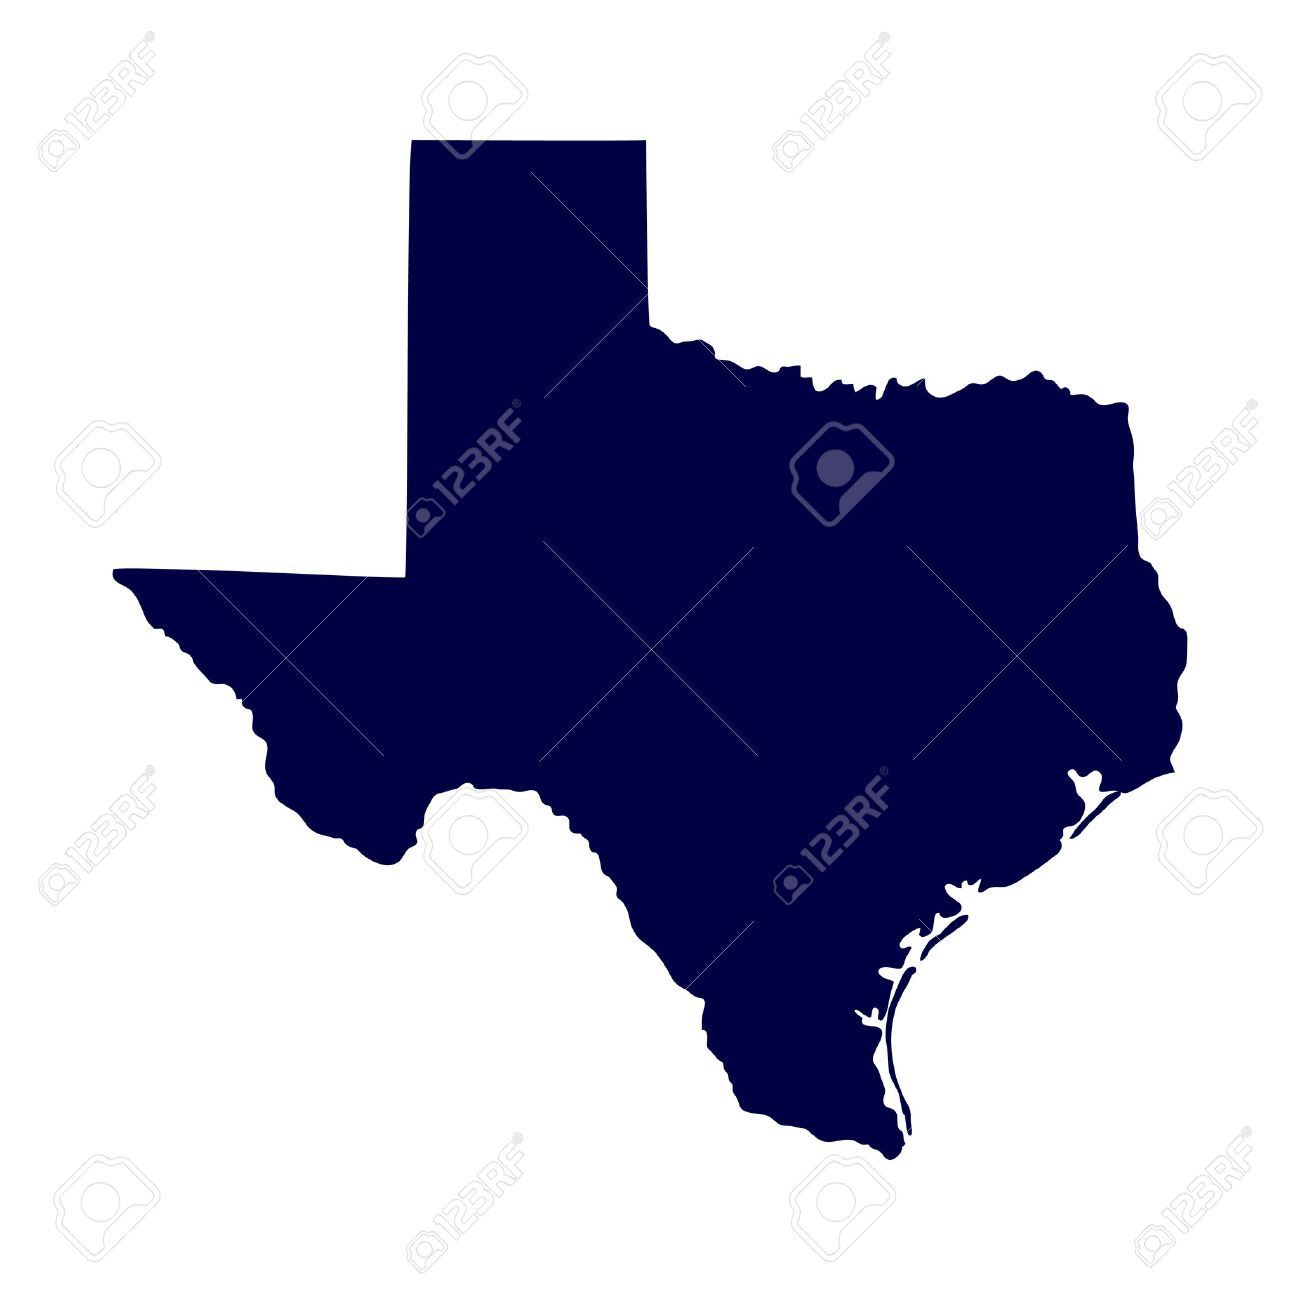 map of the U S state of Texas - 28009673